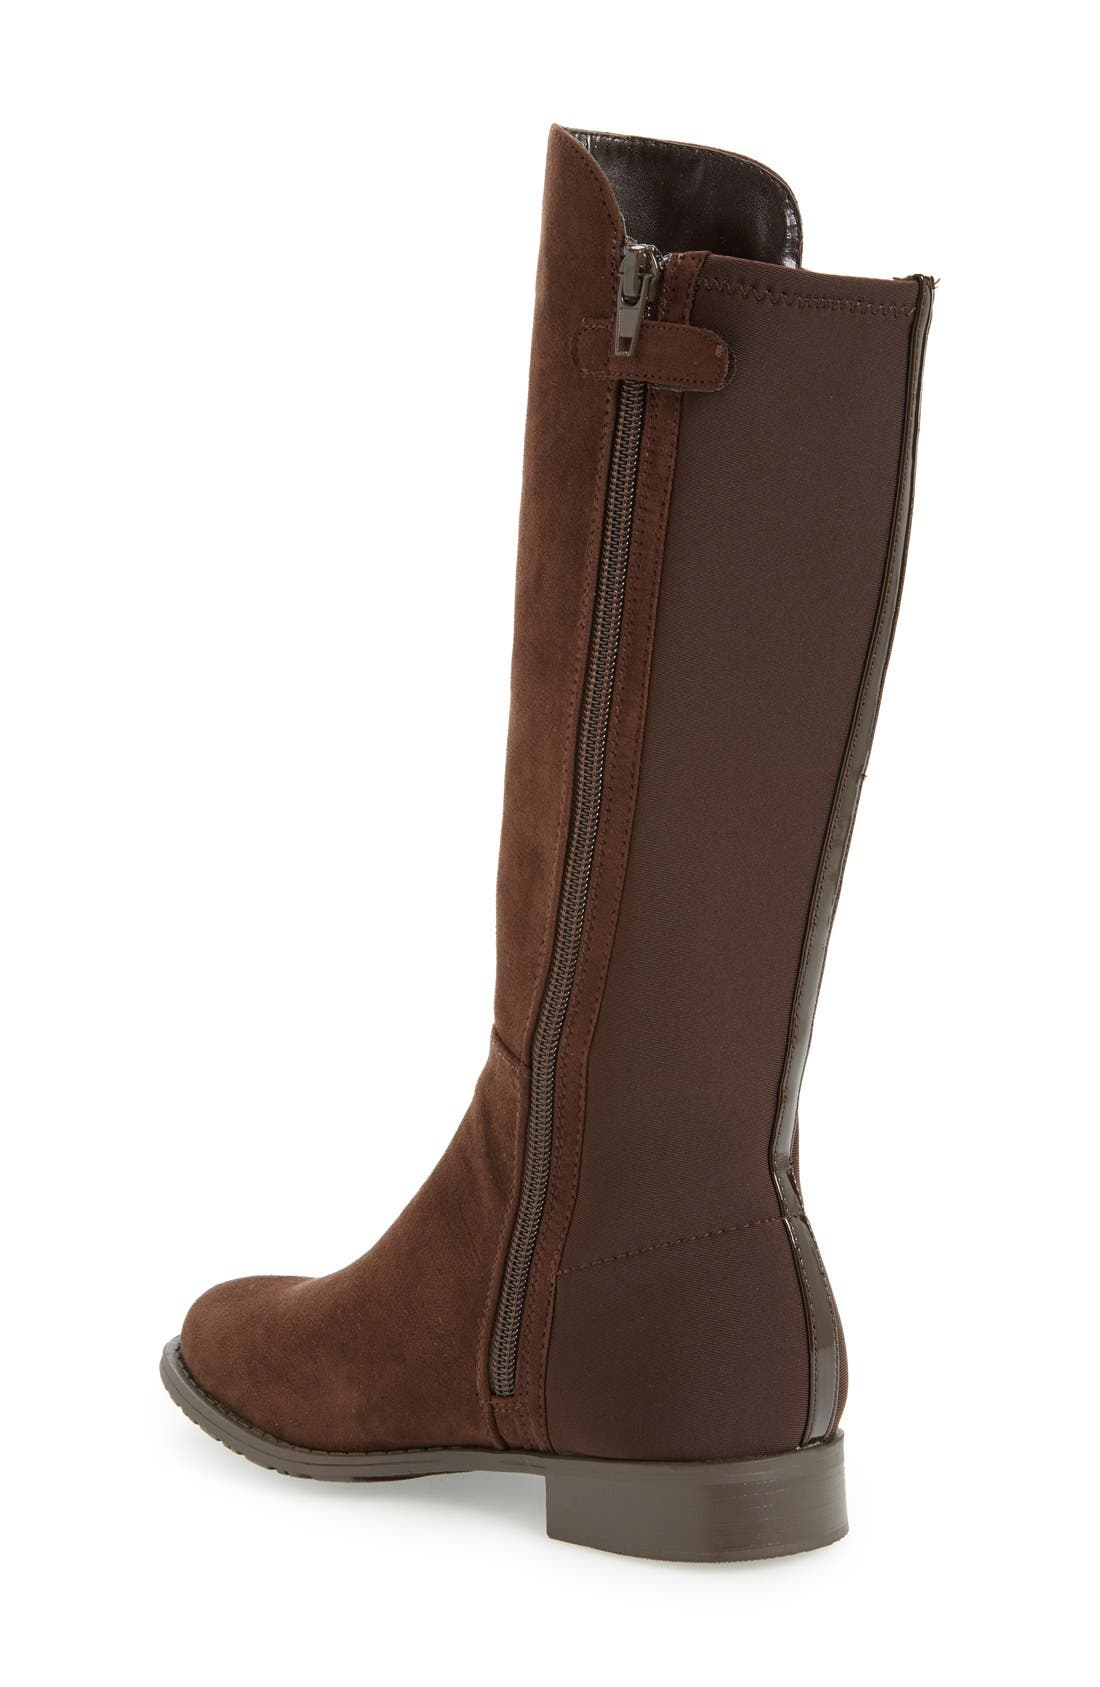 '50/50' Stretch Back Riding Boot,                             Alternate thumbnail 2, color,                             Brown Leather